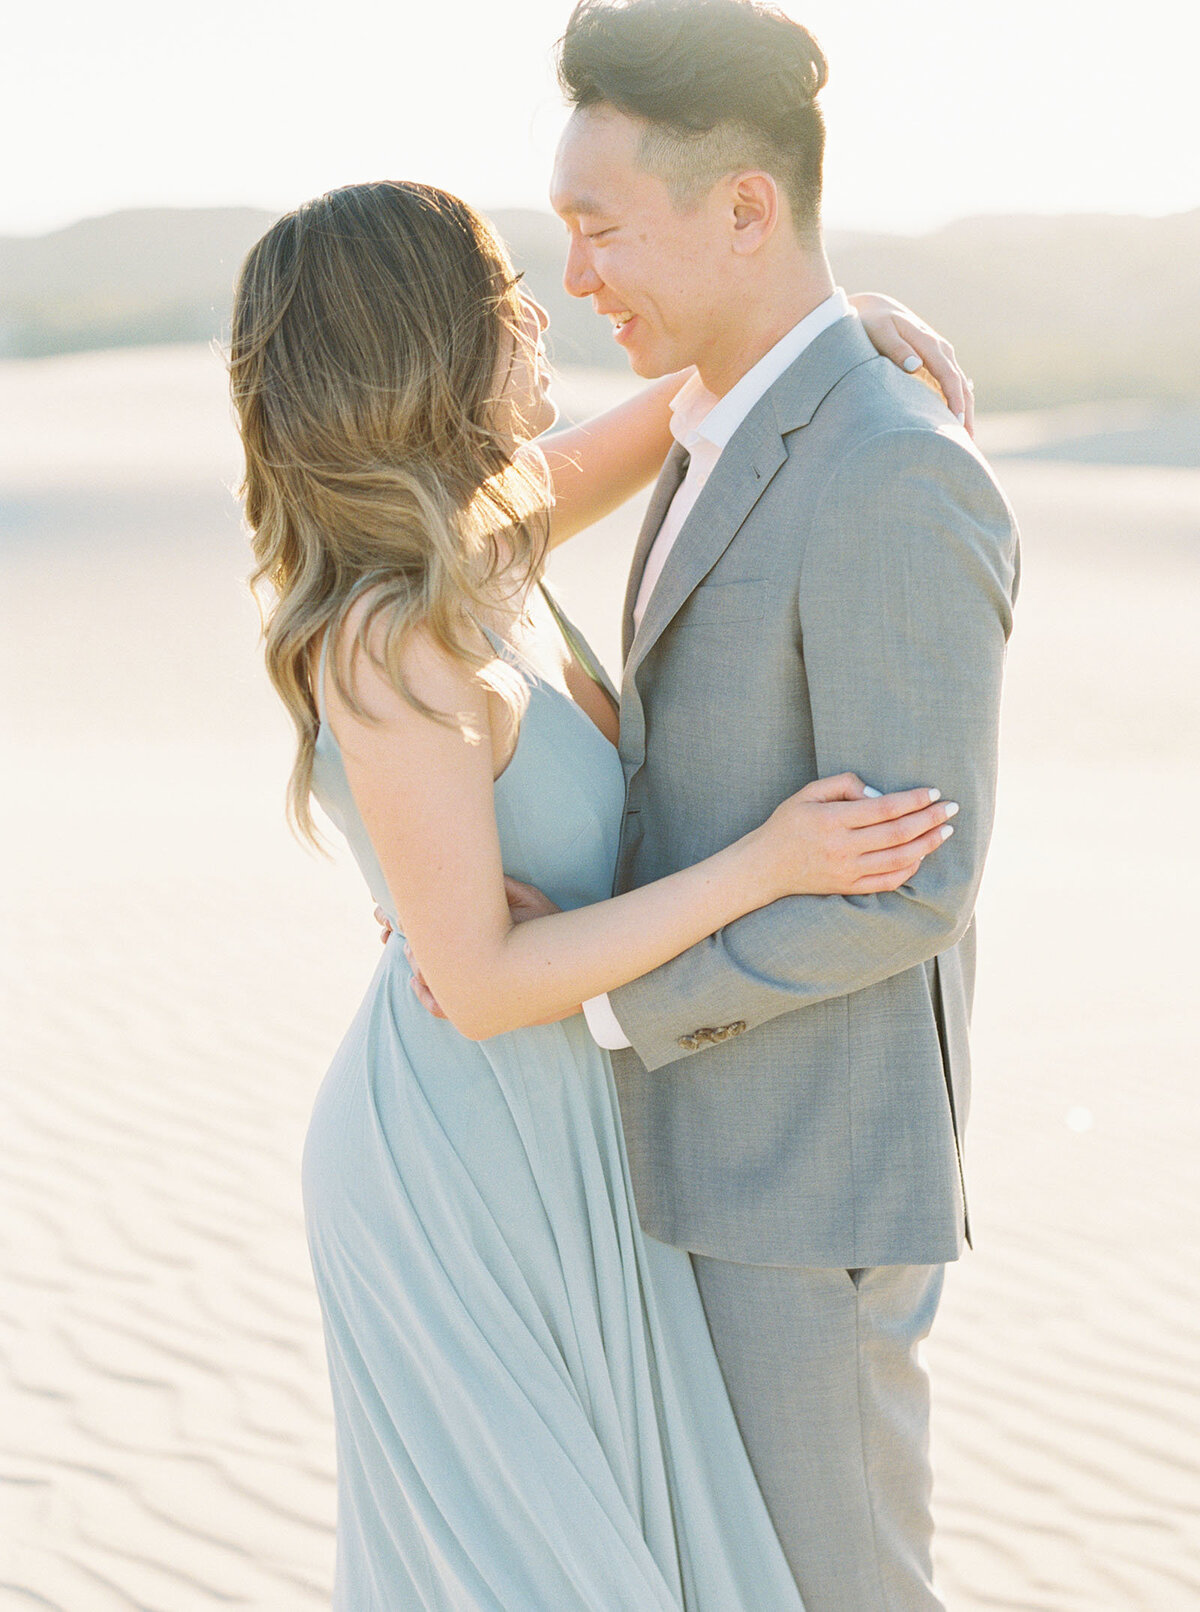 sand-dune-engagement-photos-25